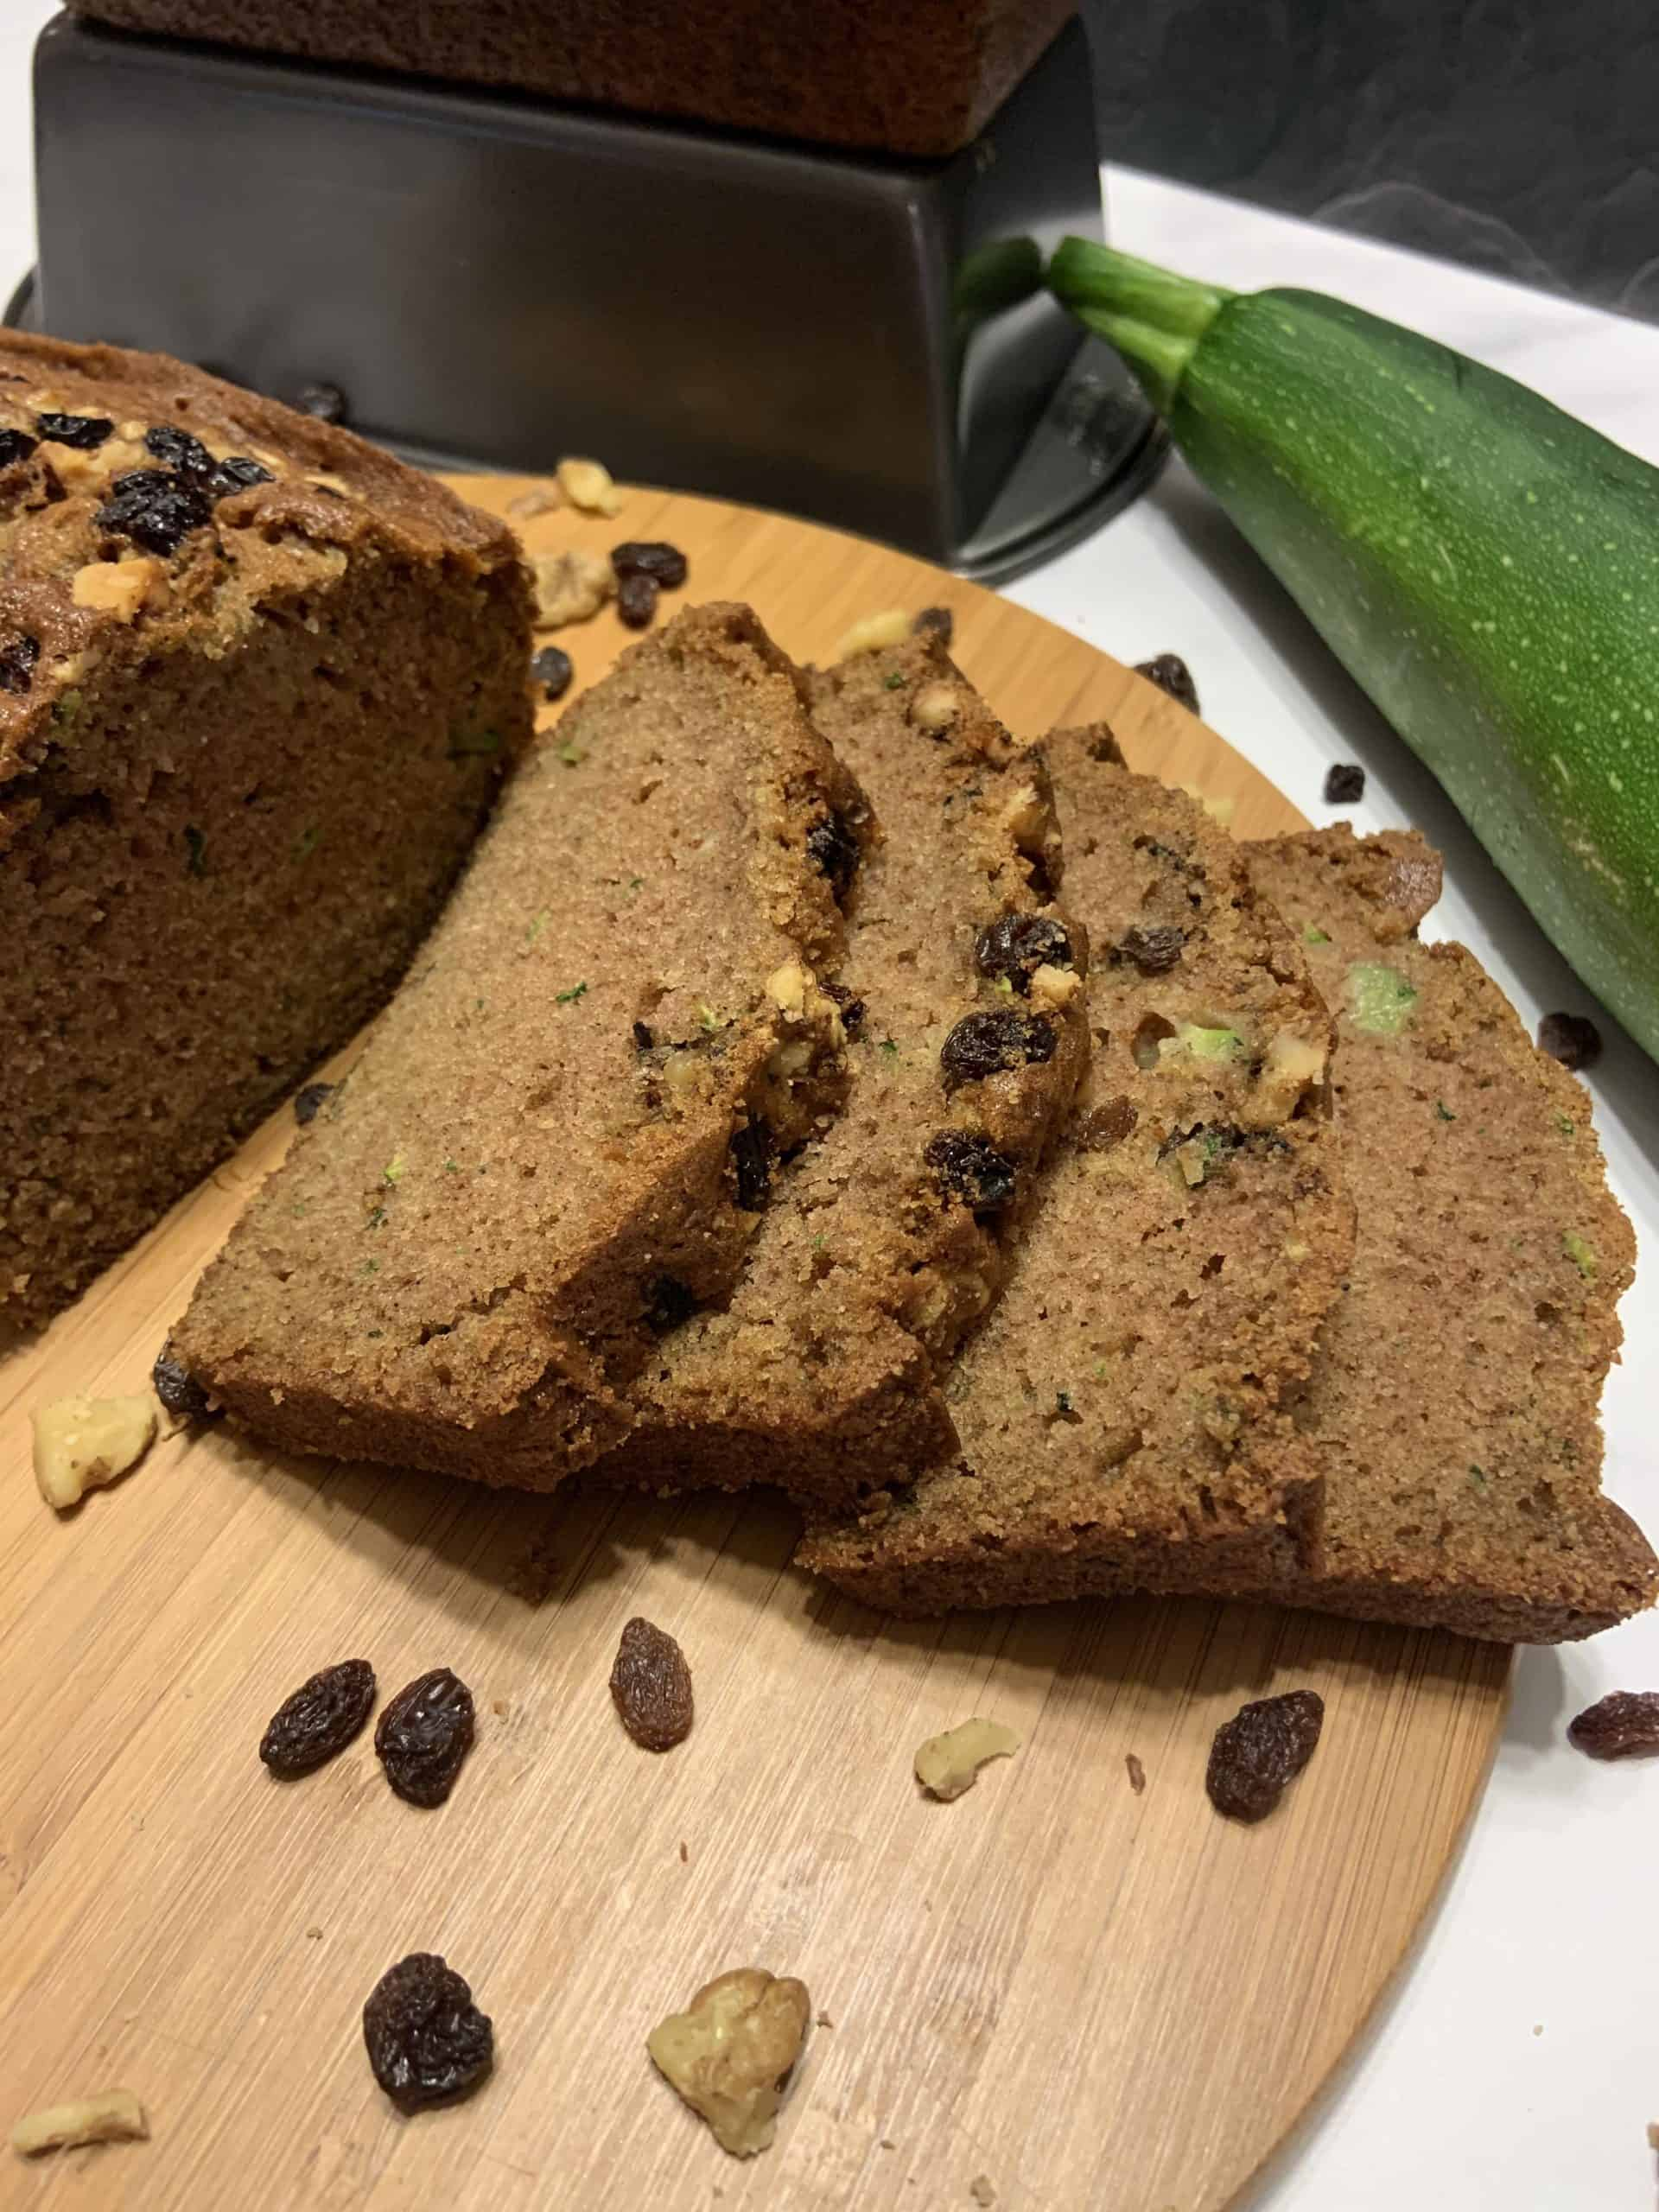 Zucchini Bread sliced on a wooden cutting board